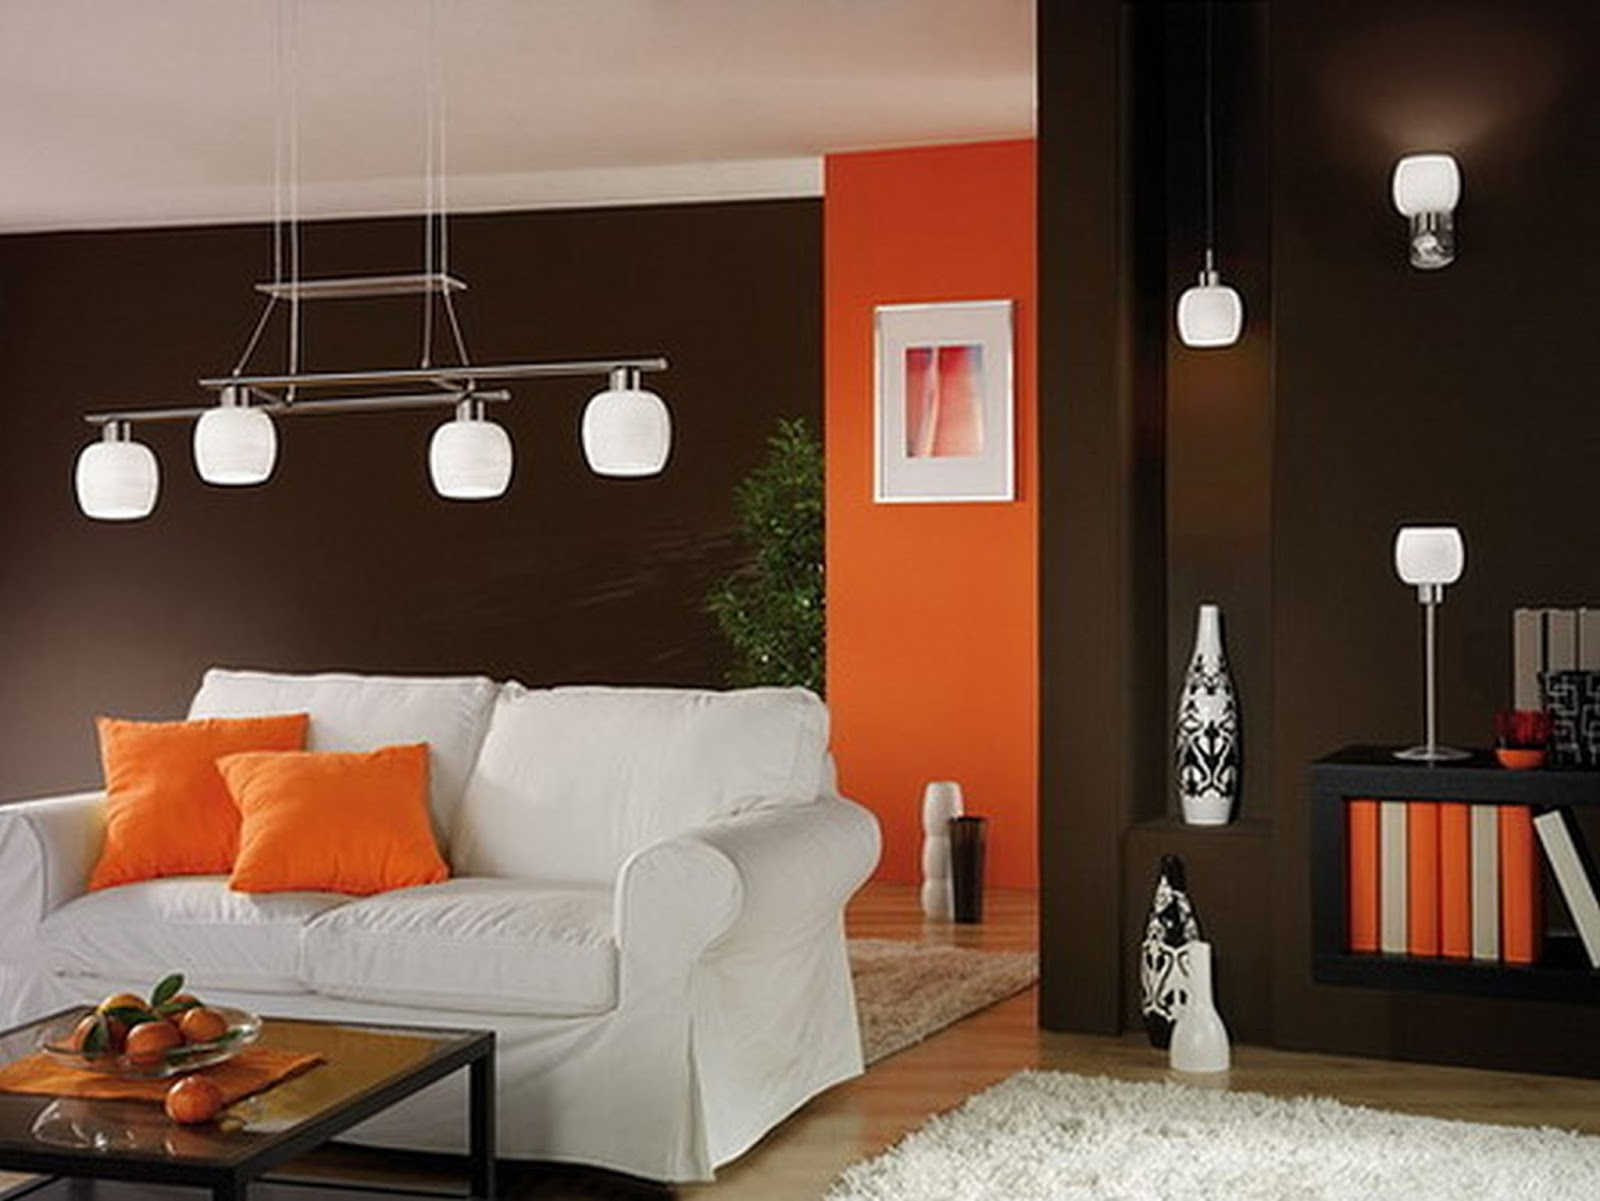 This Cheap Modern Home D Cor Inspiration Is Affordable And Easy To Do So It Is Better For You To Repaint Your Room Wall By Yourself